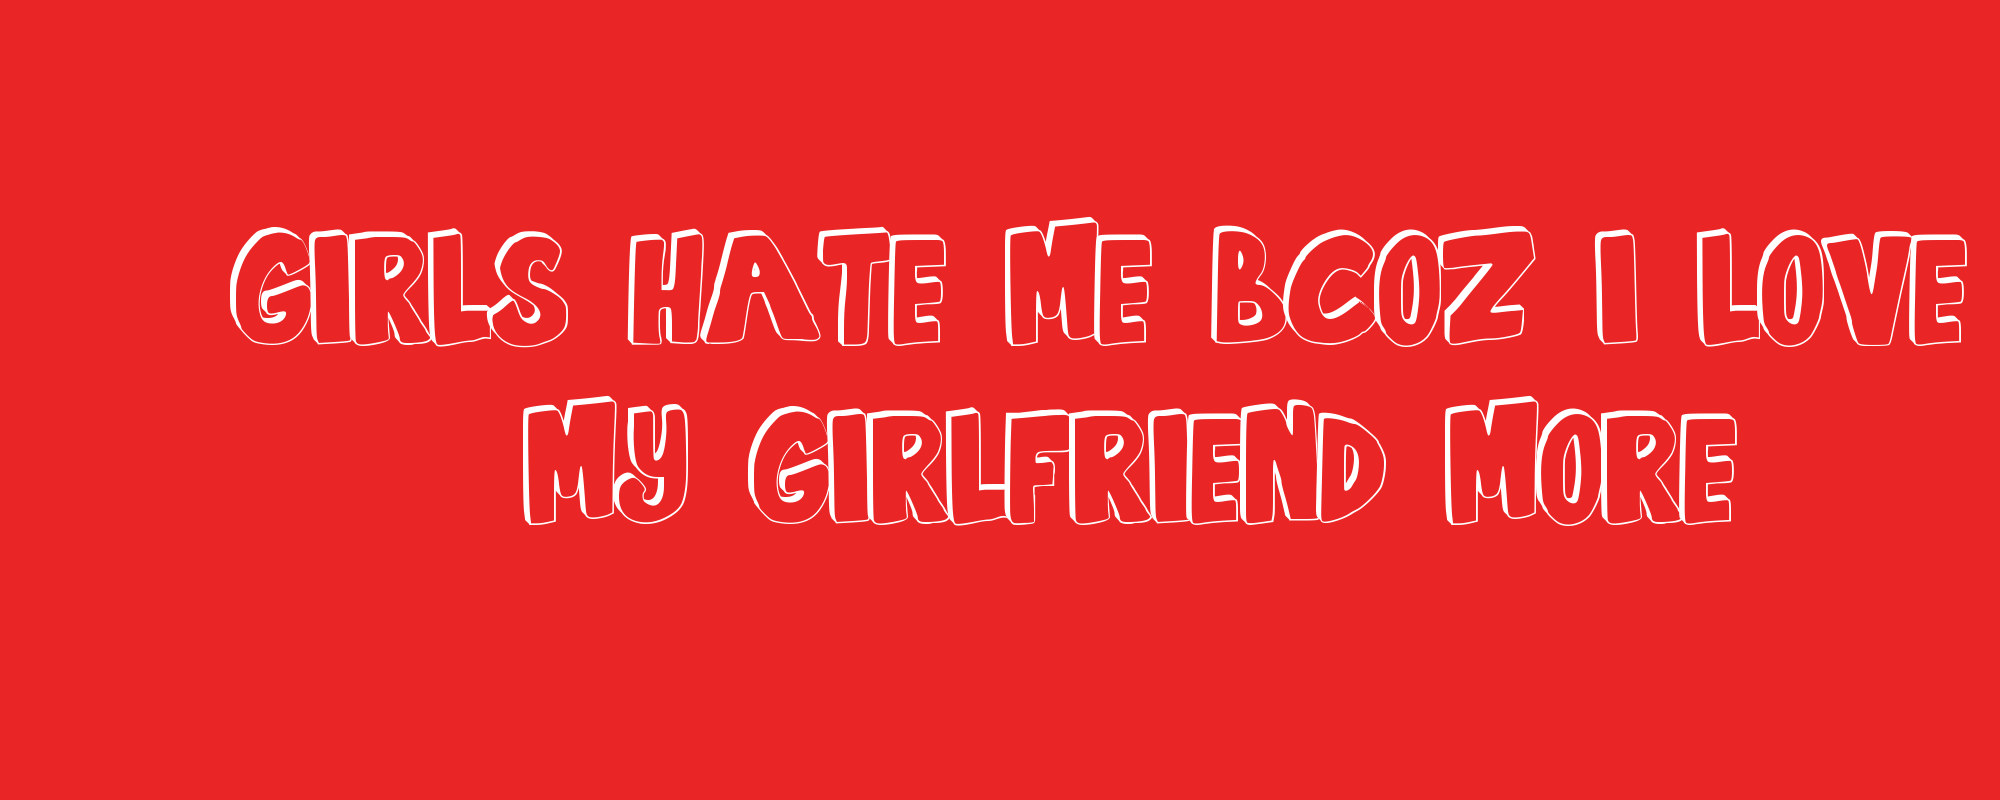 Girl who hates dating